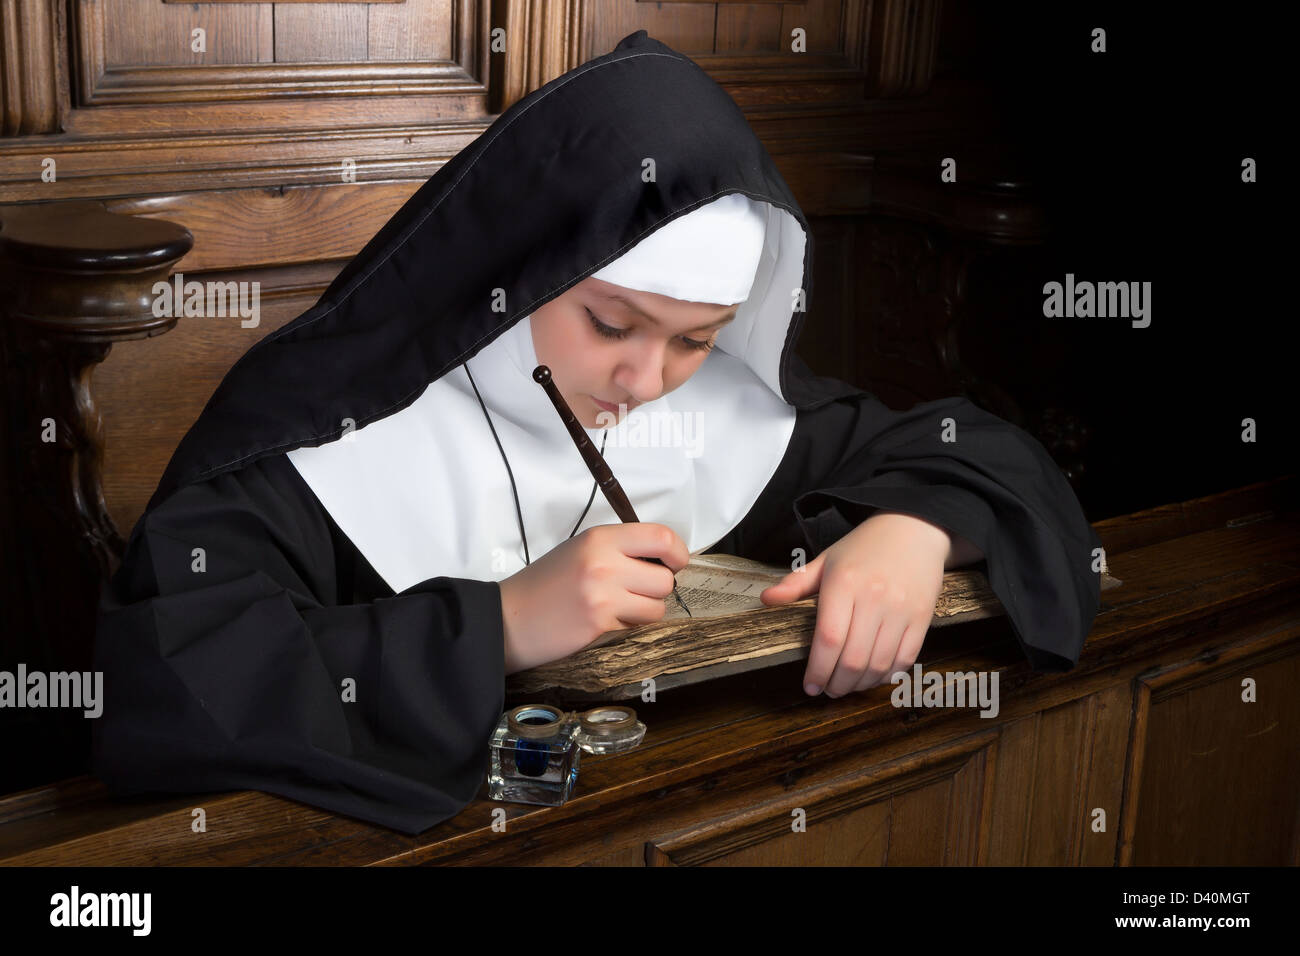 Young nun writing in an ancient book in a medieval church interior - Stock Image